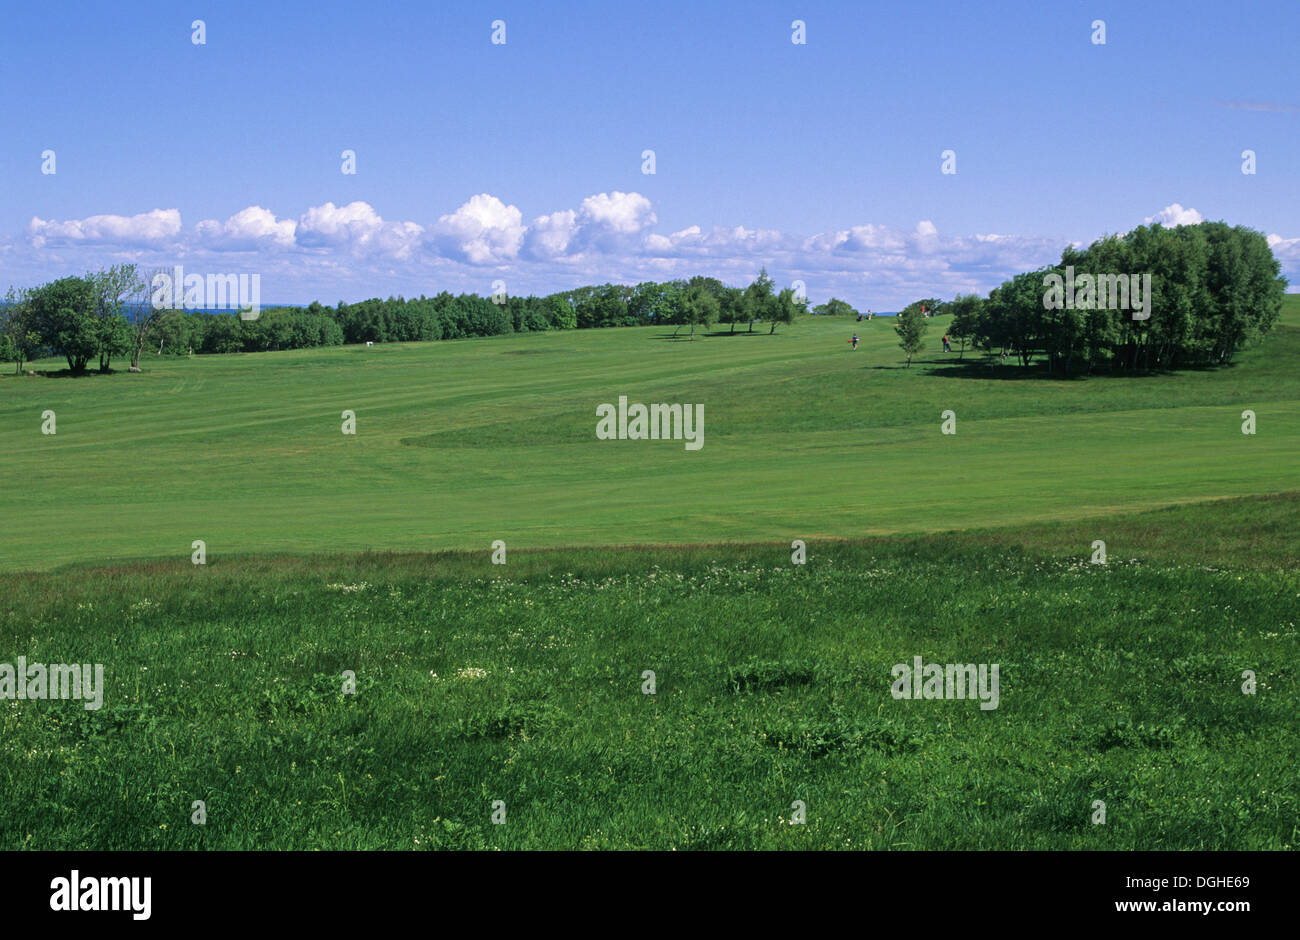 Golf course, view across fairway and rough, Fasterbo, Sweden - Stock Image